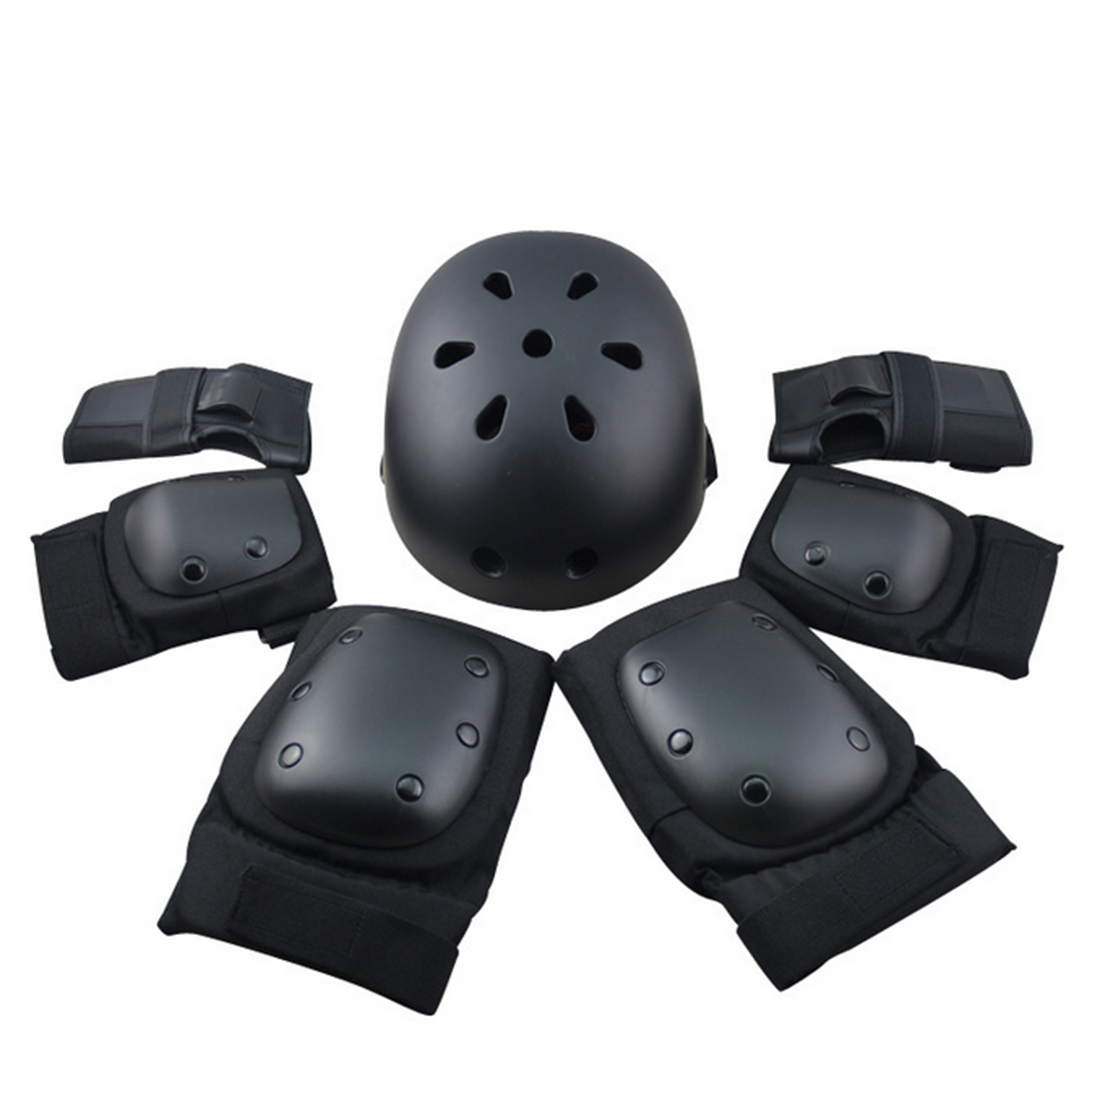 Sport Safety Protective Gear Elbow Wrist Knee Pads and Helmet Guard for Kids Adult Skateboard Skating Riding 7Pcs Set - Black M